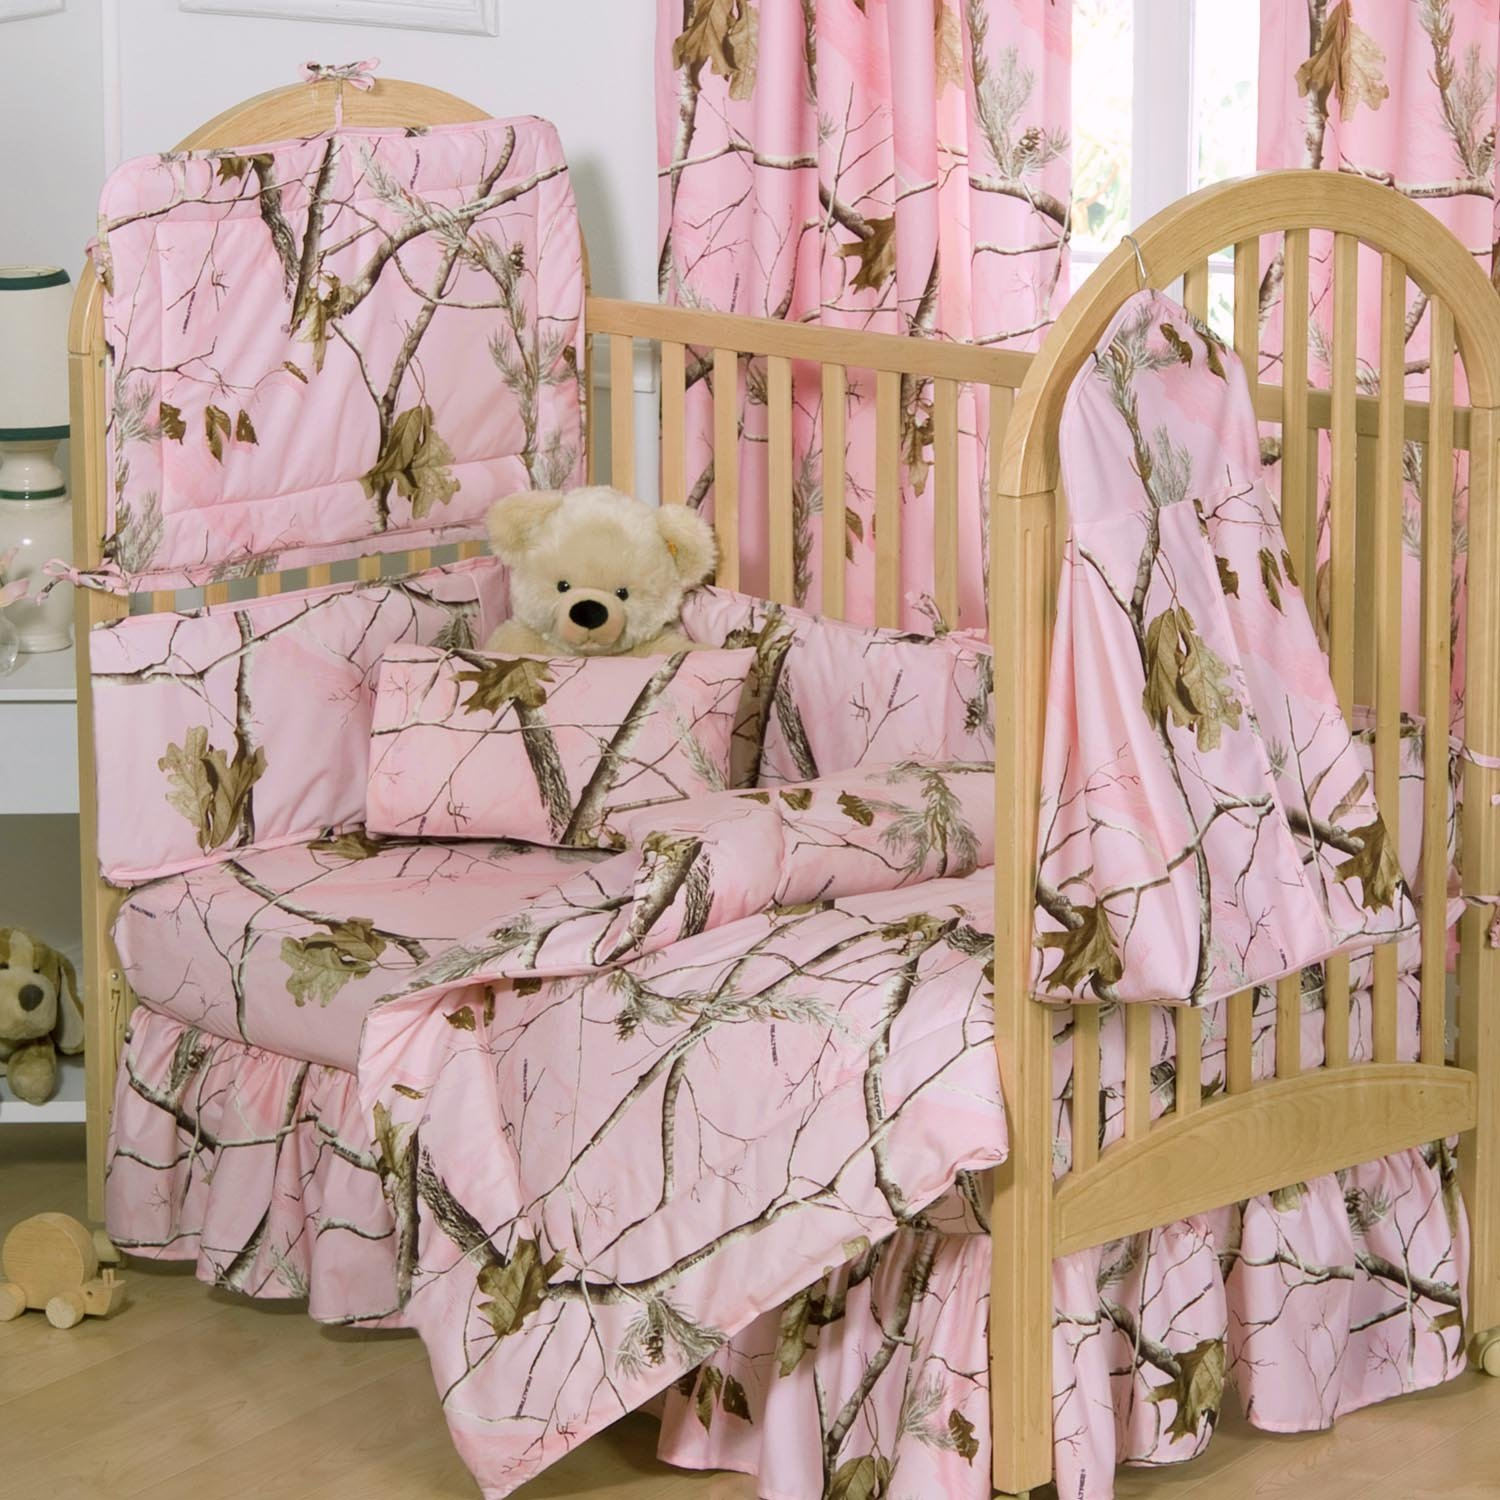 Realtree camo crib bedding crib pink camo bedskirt baby girl